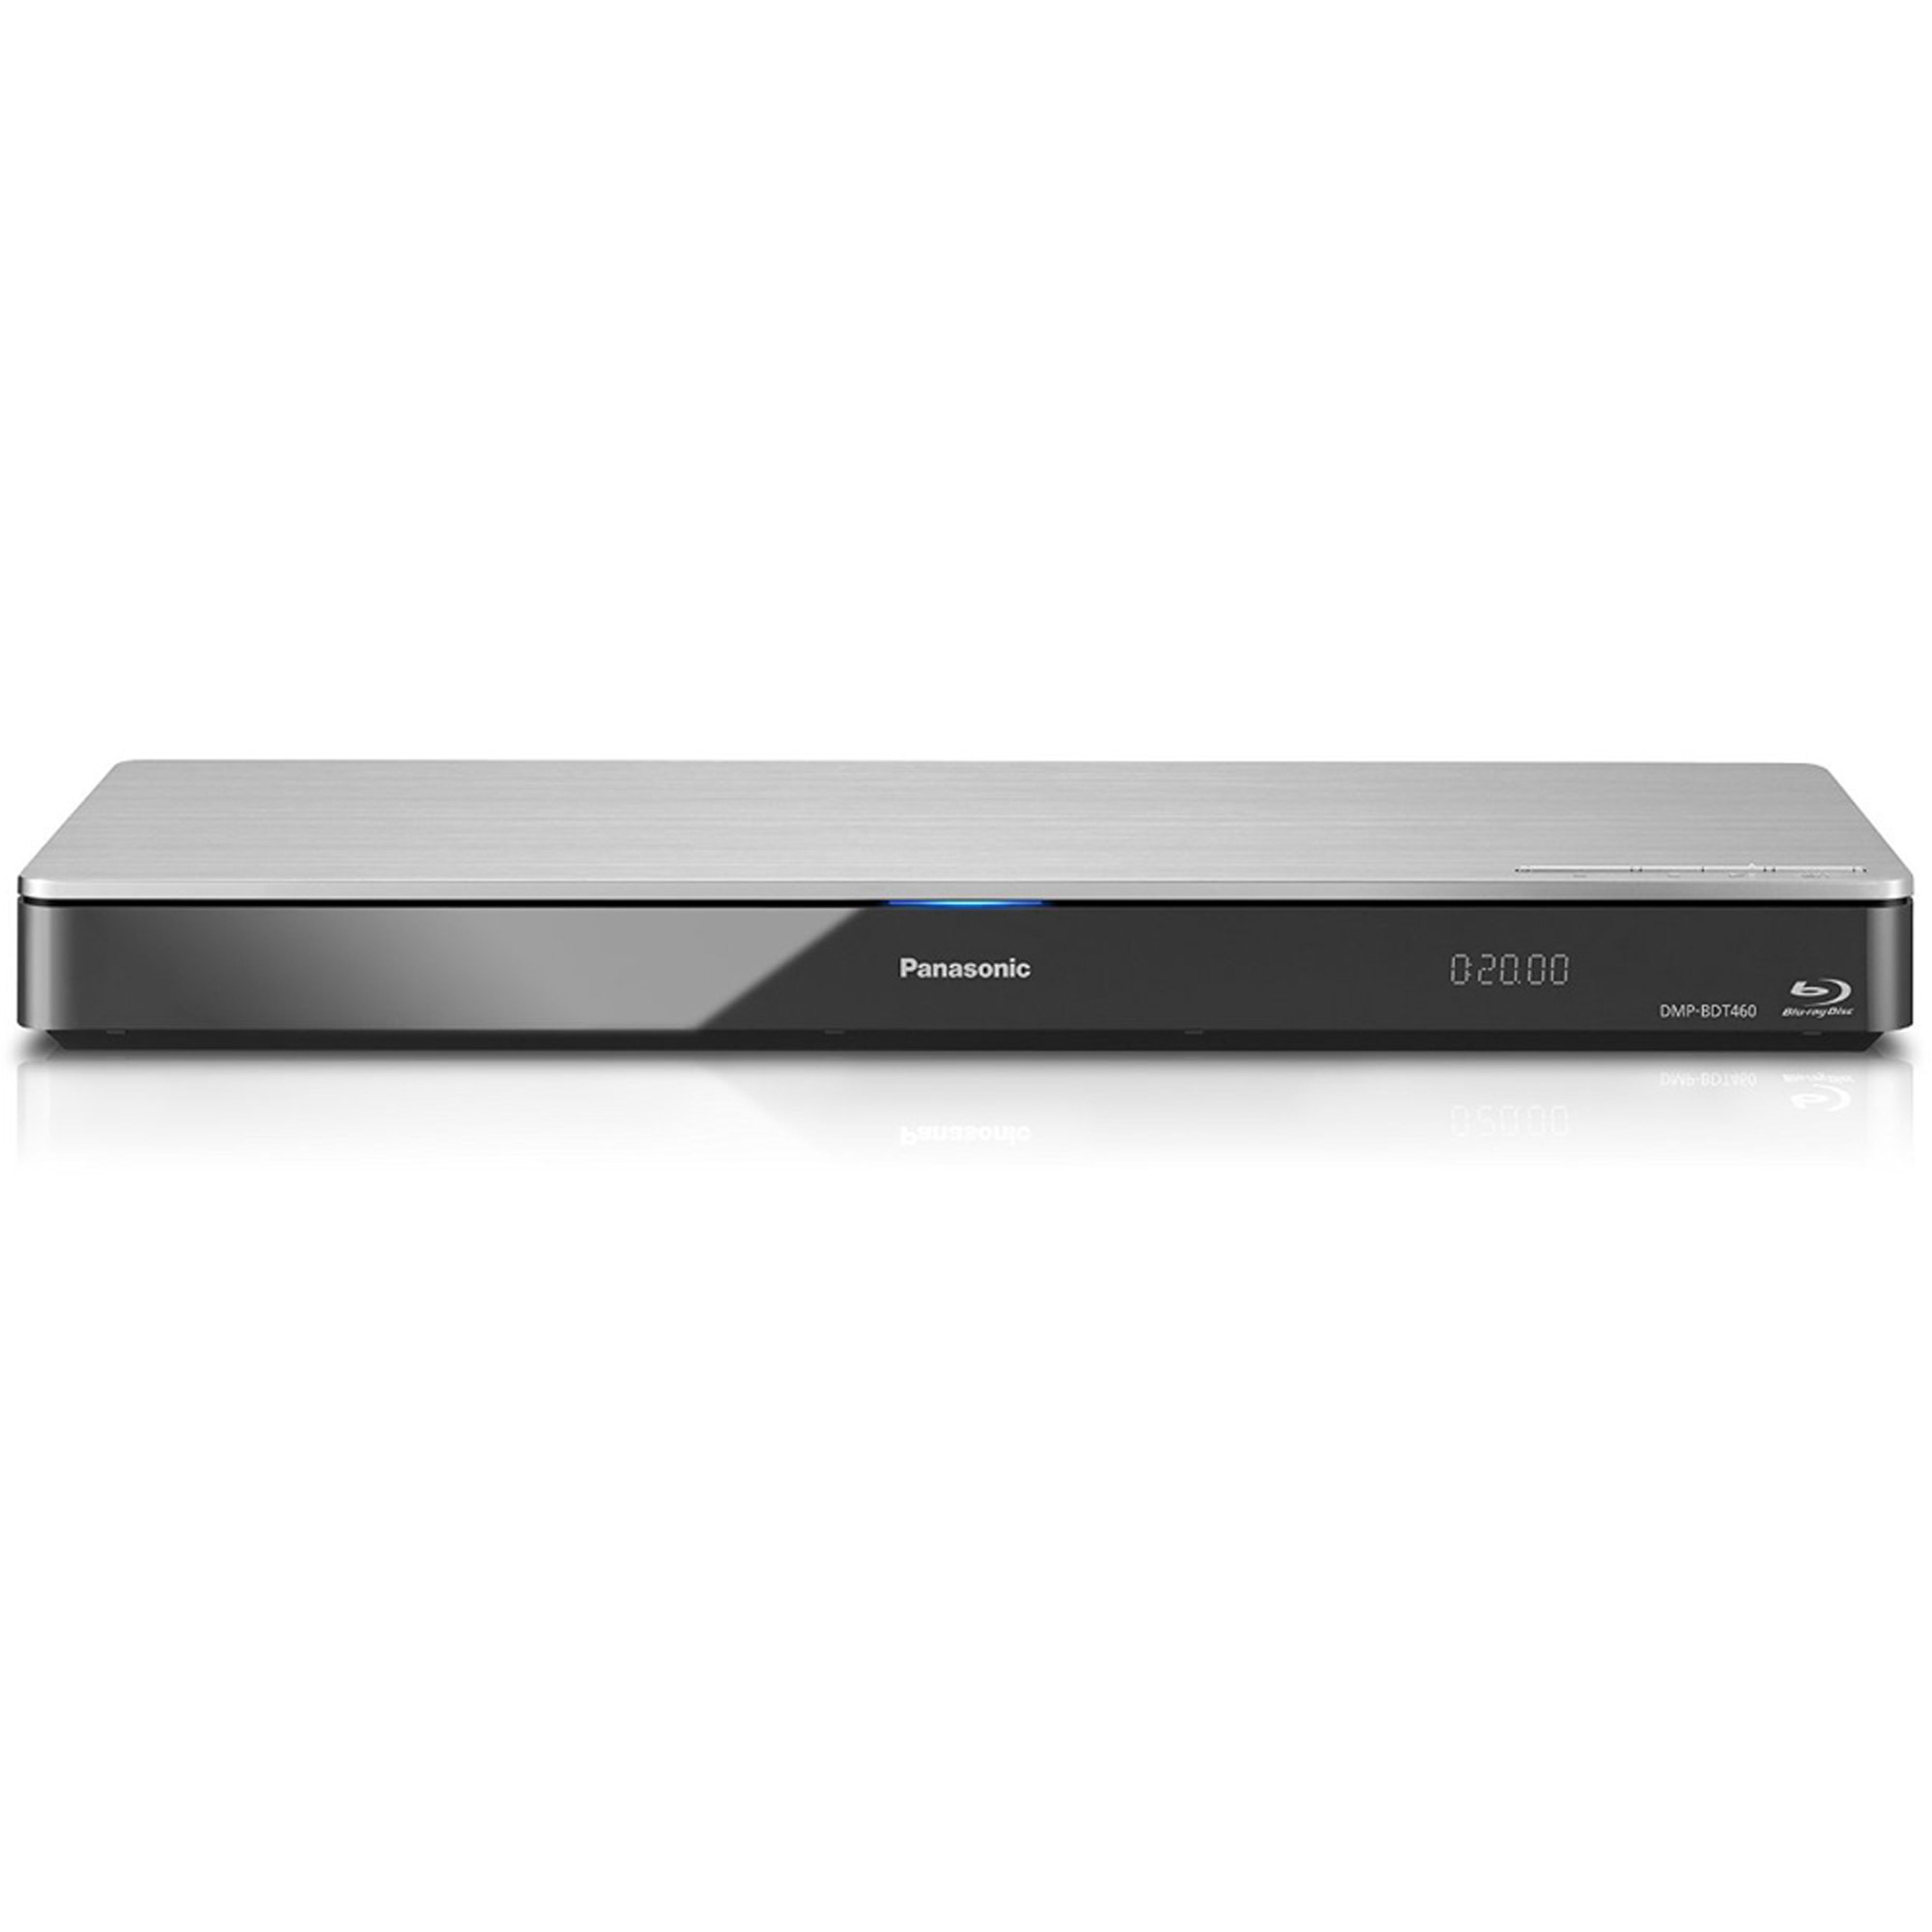 O Blu ray Inteligente Panasonic red 4K sobre escalado 3D Blu-Ray Disc Streaming reproductor DMP-BDT460 (plata), WiFi, doble HDMI, Miracast + Panasonic en VeoyCompro.com.co